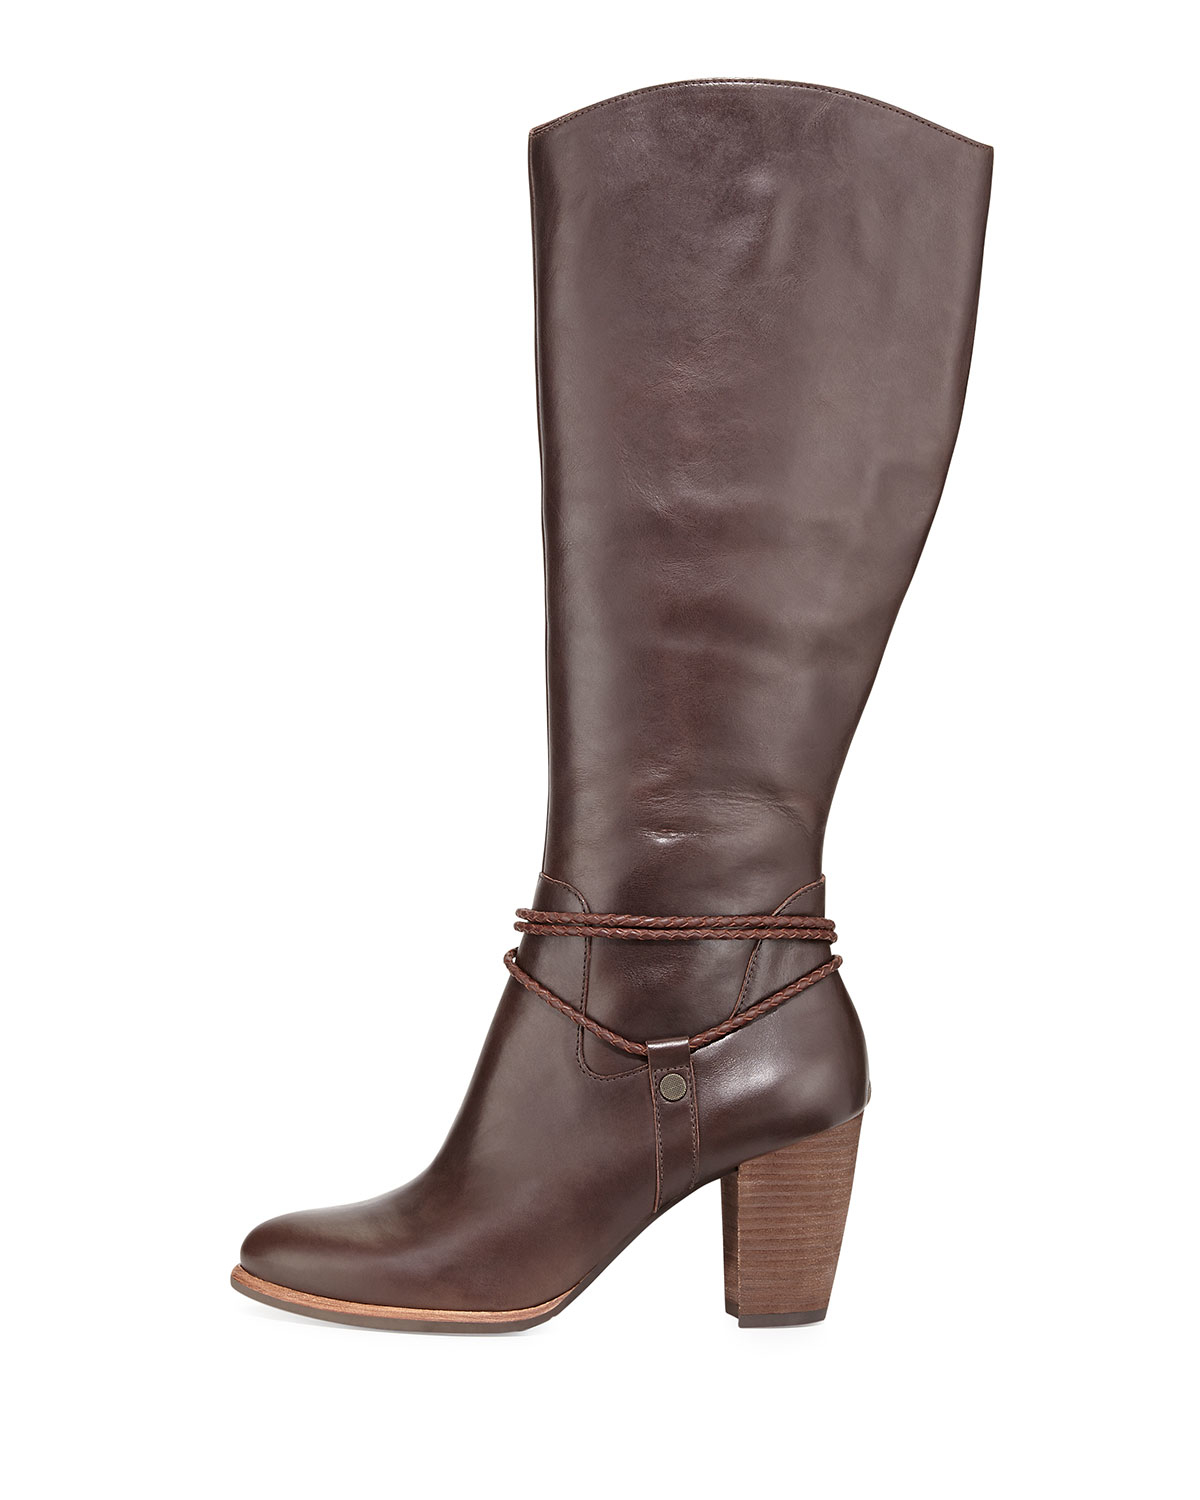 Ugg Leather Knee High Boots